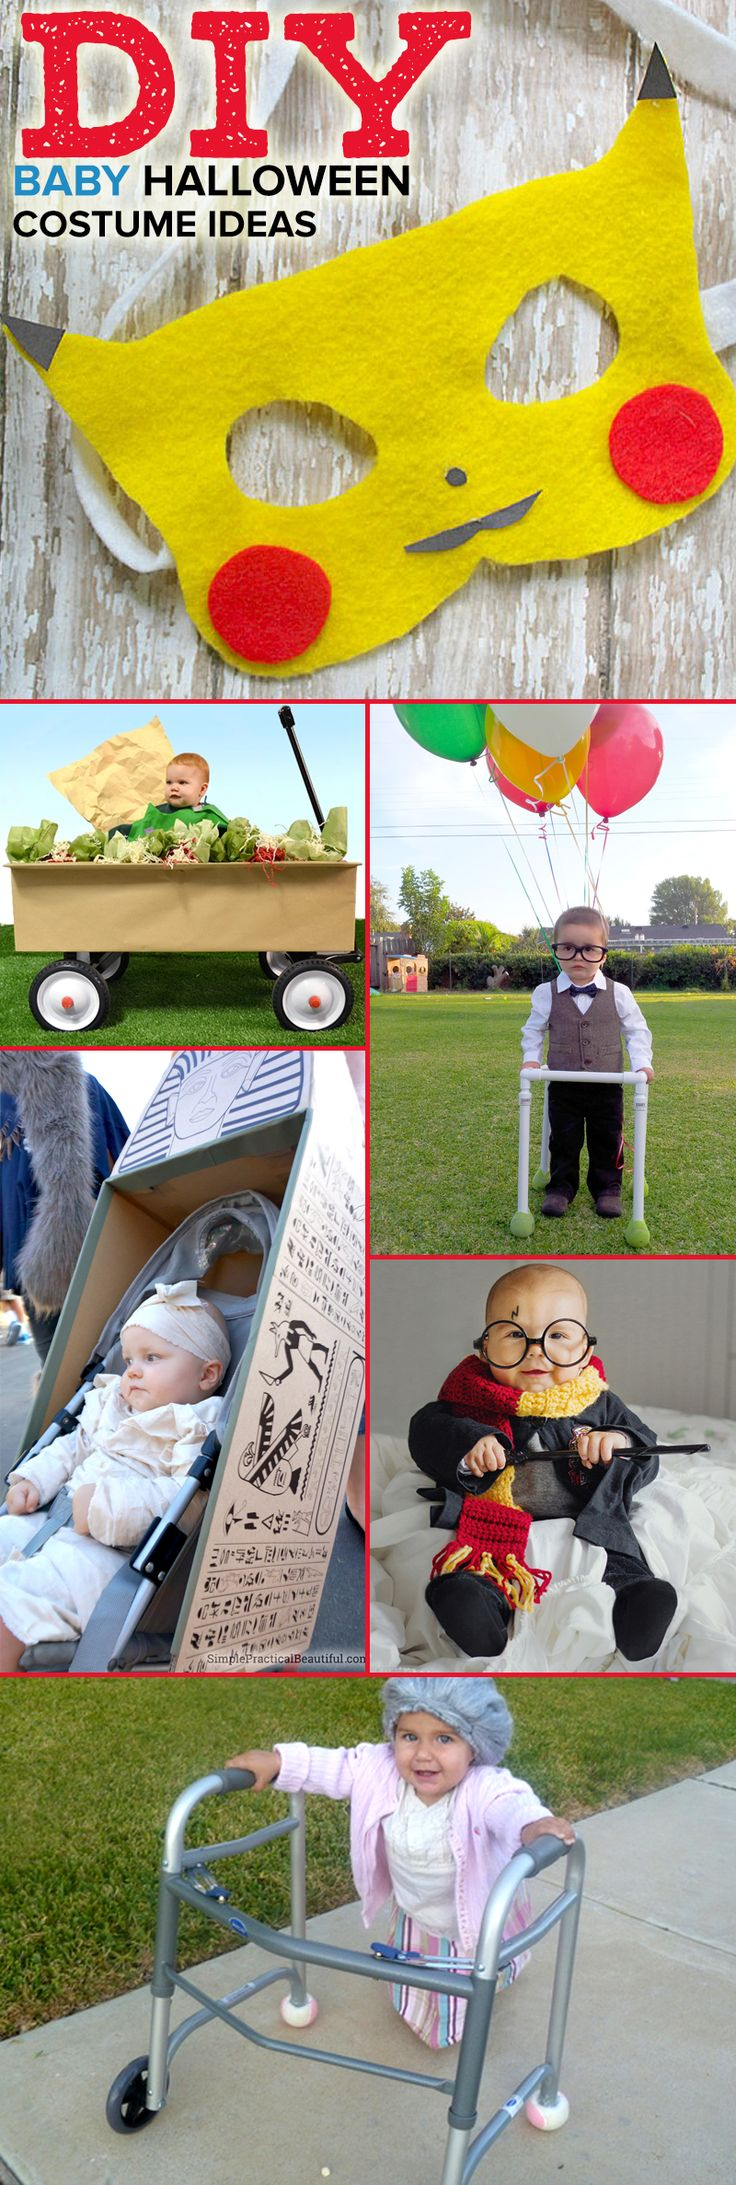 336 best diy halloween costumes images on pinterest family holiday create a funny and clever diy halloween costume for your baby boy or girl with one solutioingenieria